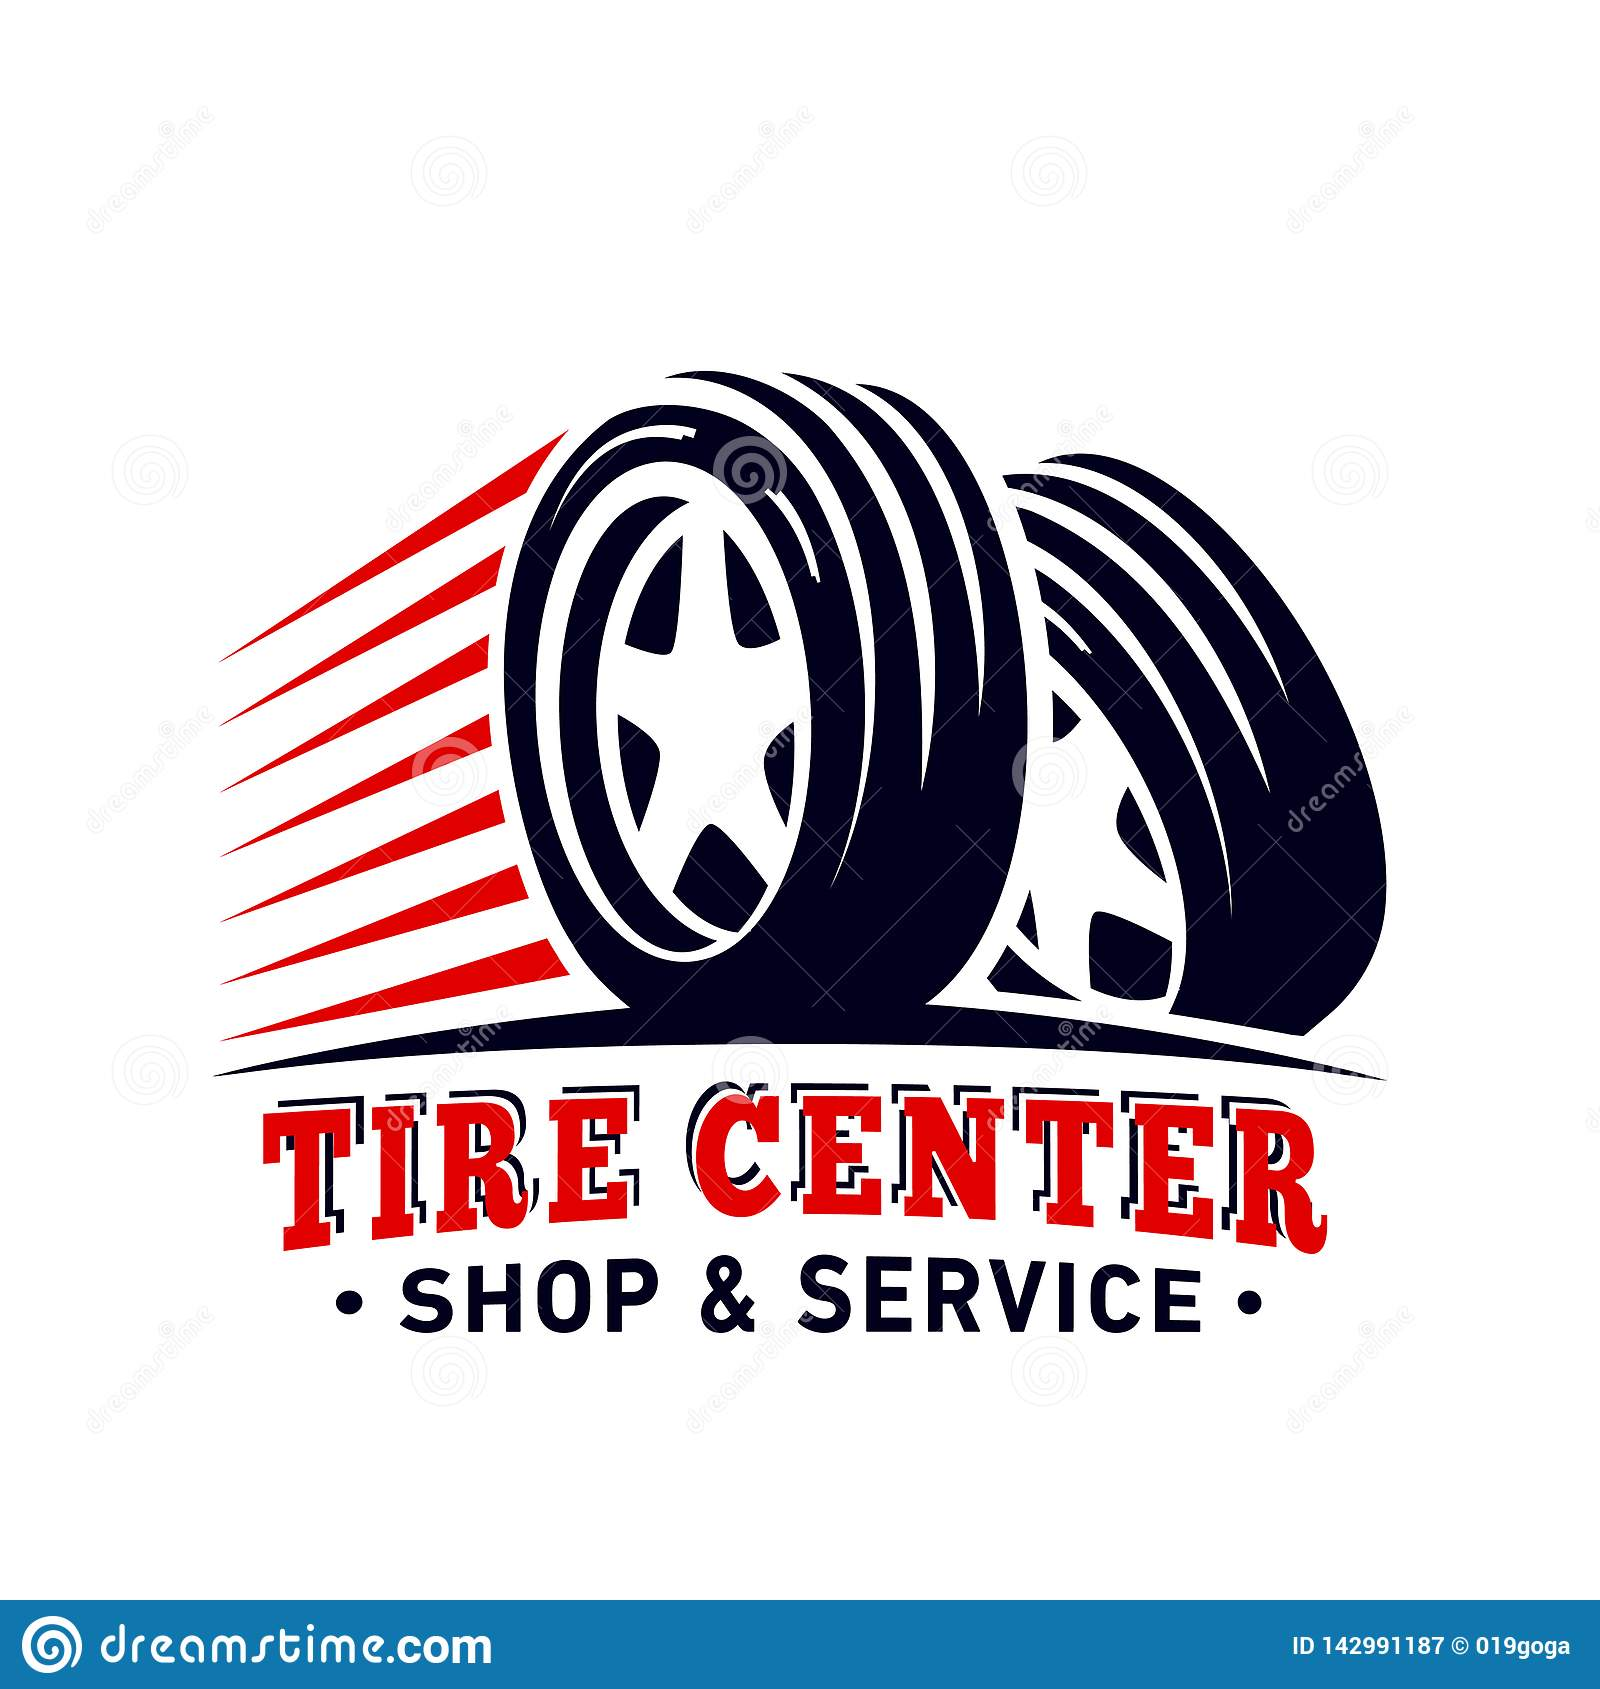 Tyre Center Shop And Service Design Template Tire Center Logo Vector And Illustration Stock Vector Illustration Of Quality Garage 142991187